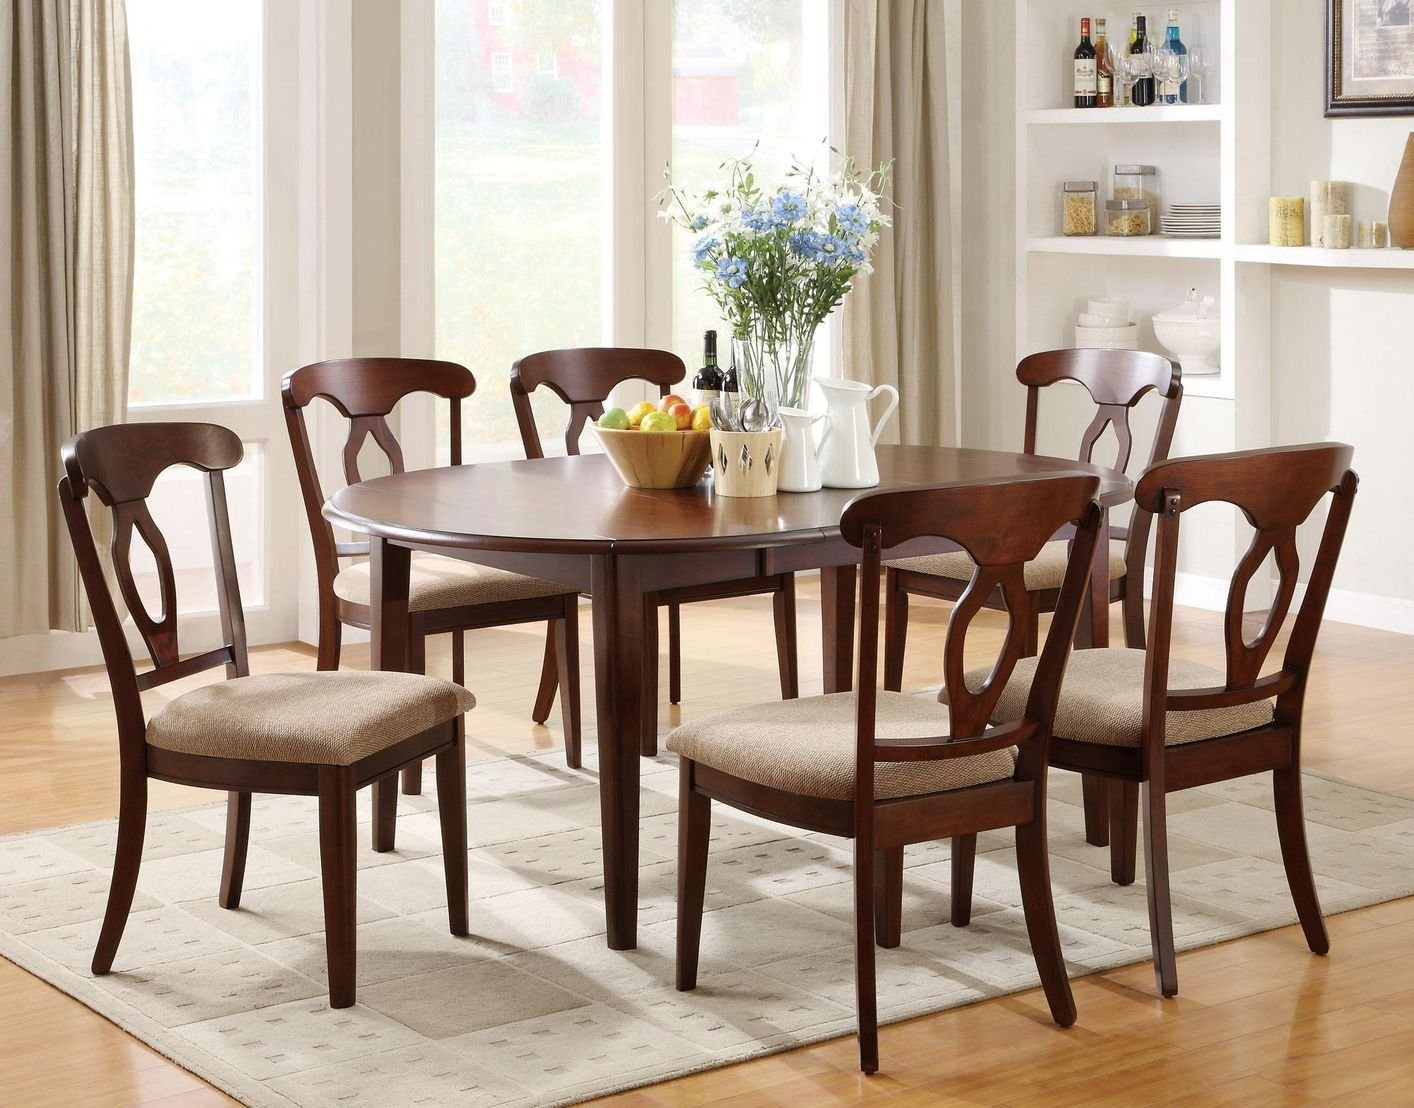 accommodate an array of dinner party sizes with this versatile